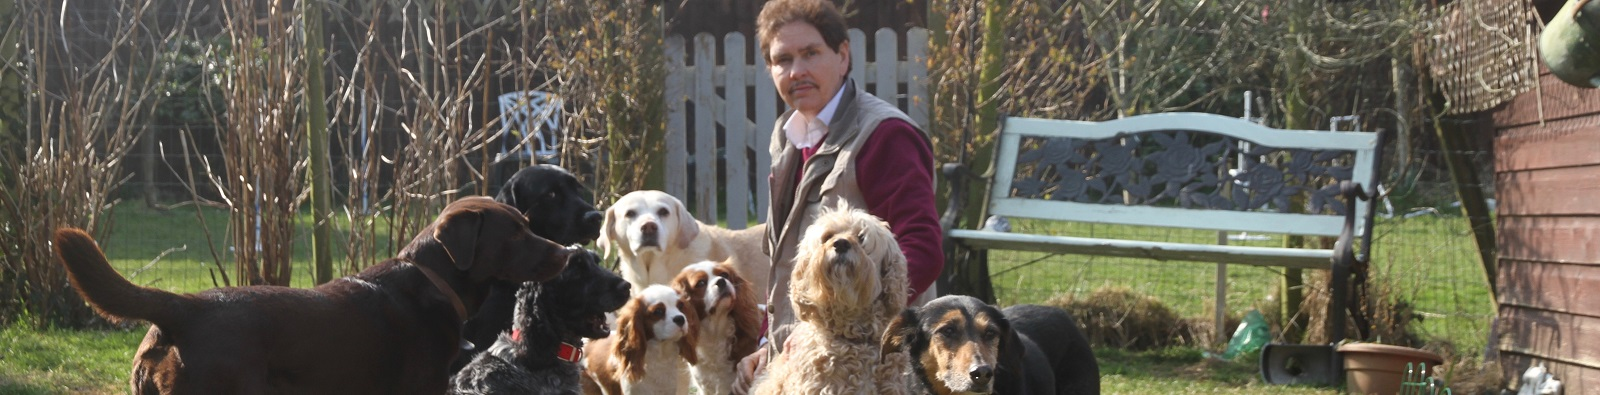 Paul James Marshall B.Ed. Dog Behaviourist and Trainer on The Isle of Wight